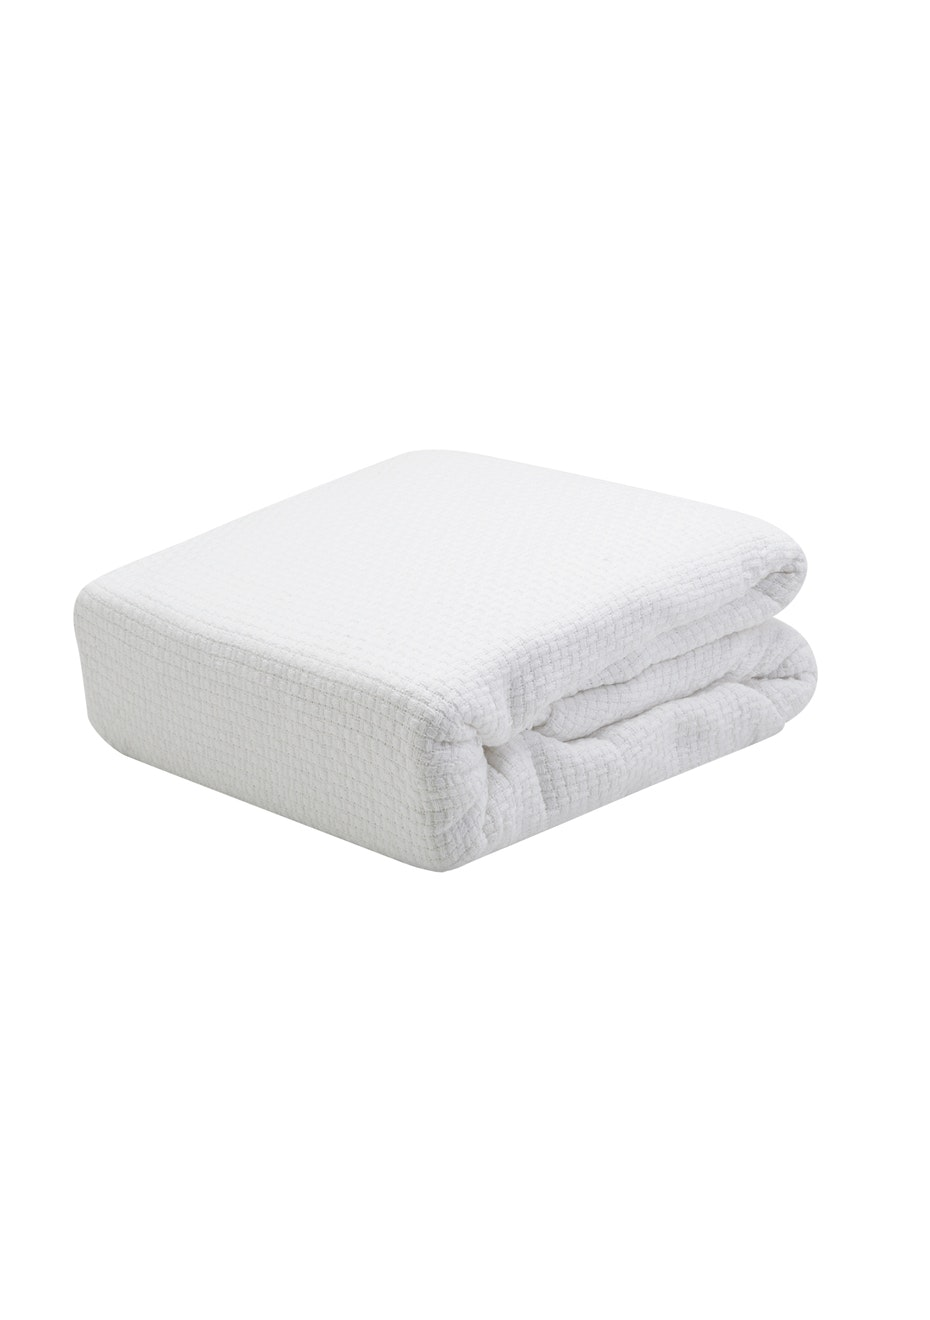 Pebble Weave Cotton Blanket - White - Double Bed